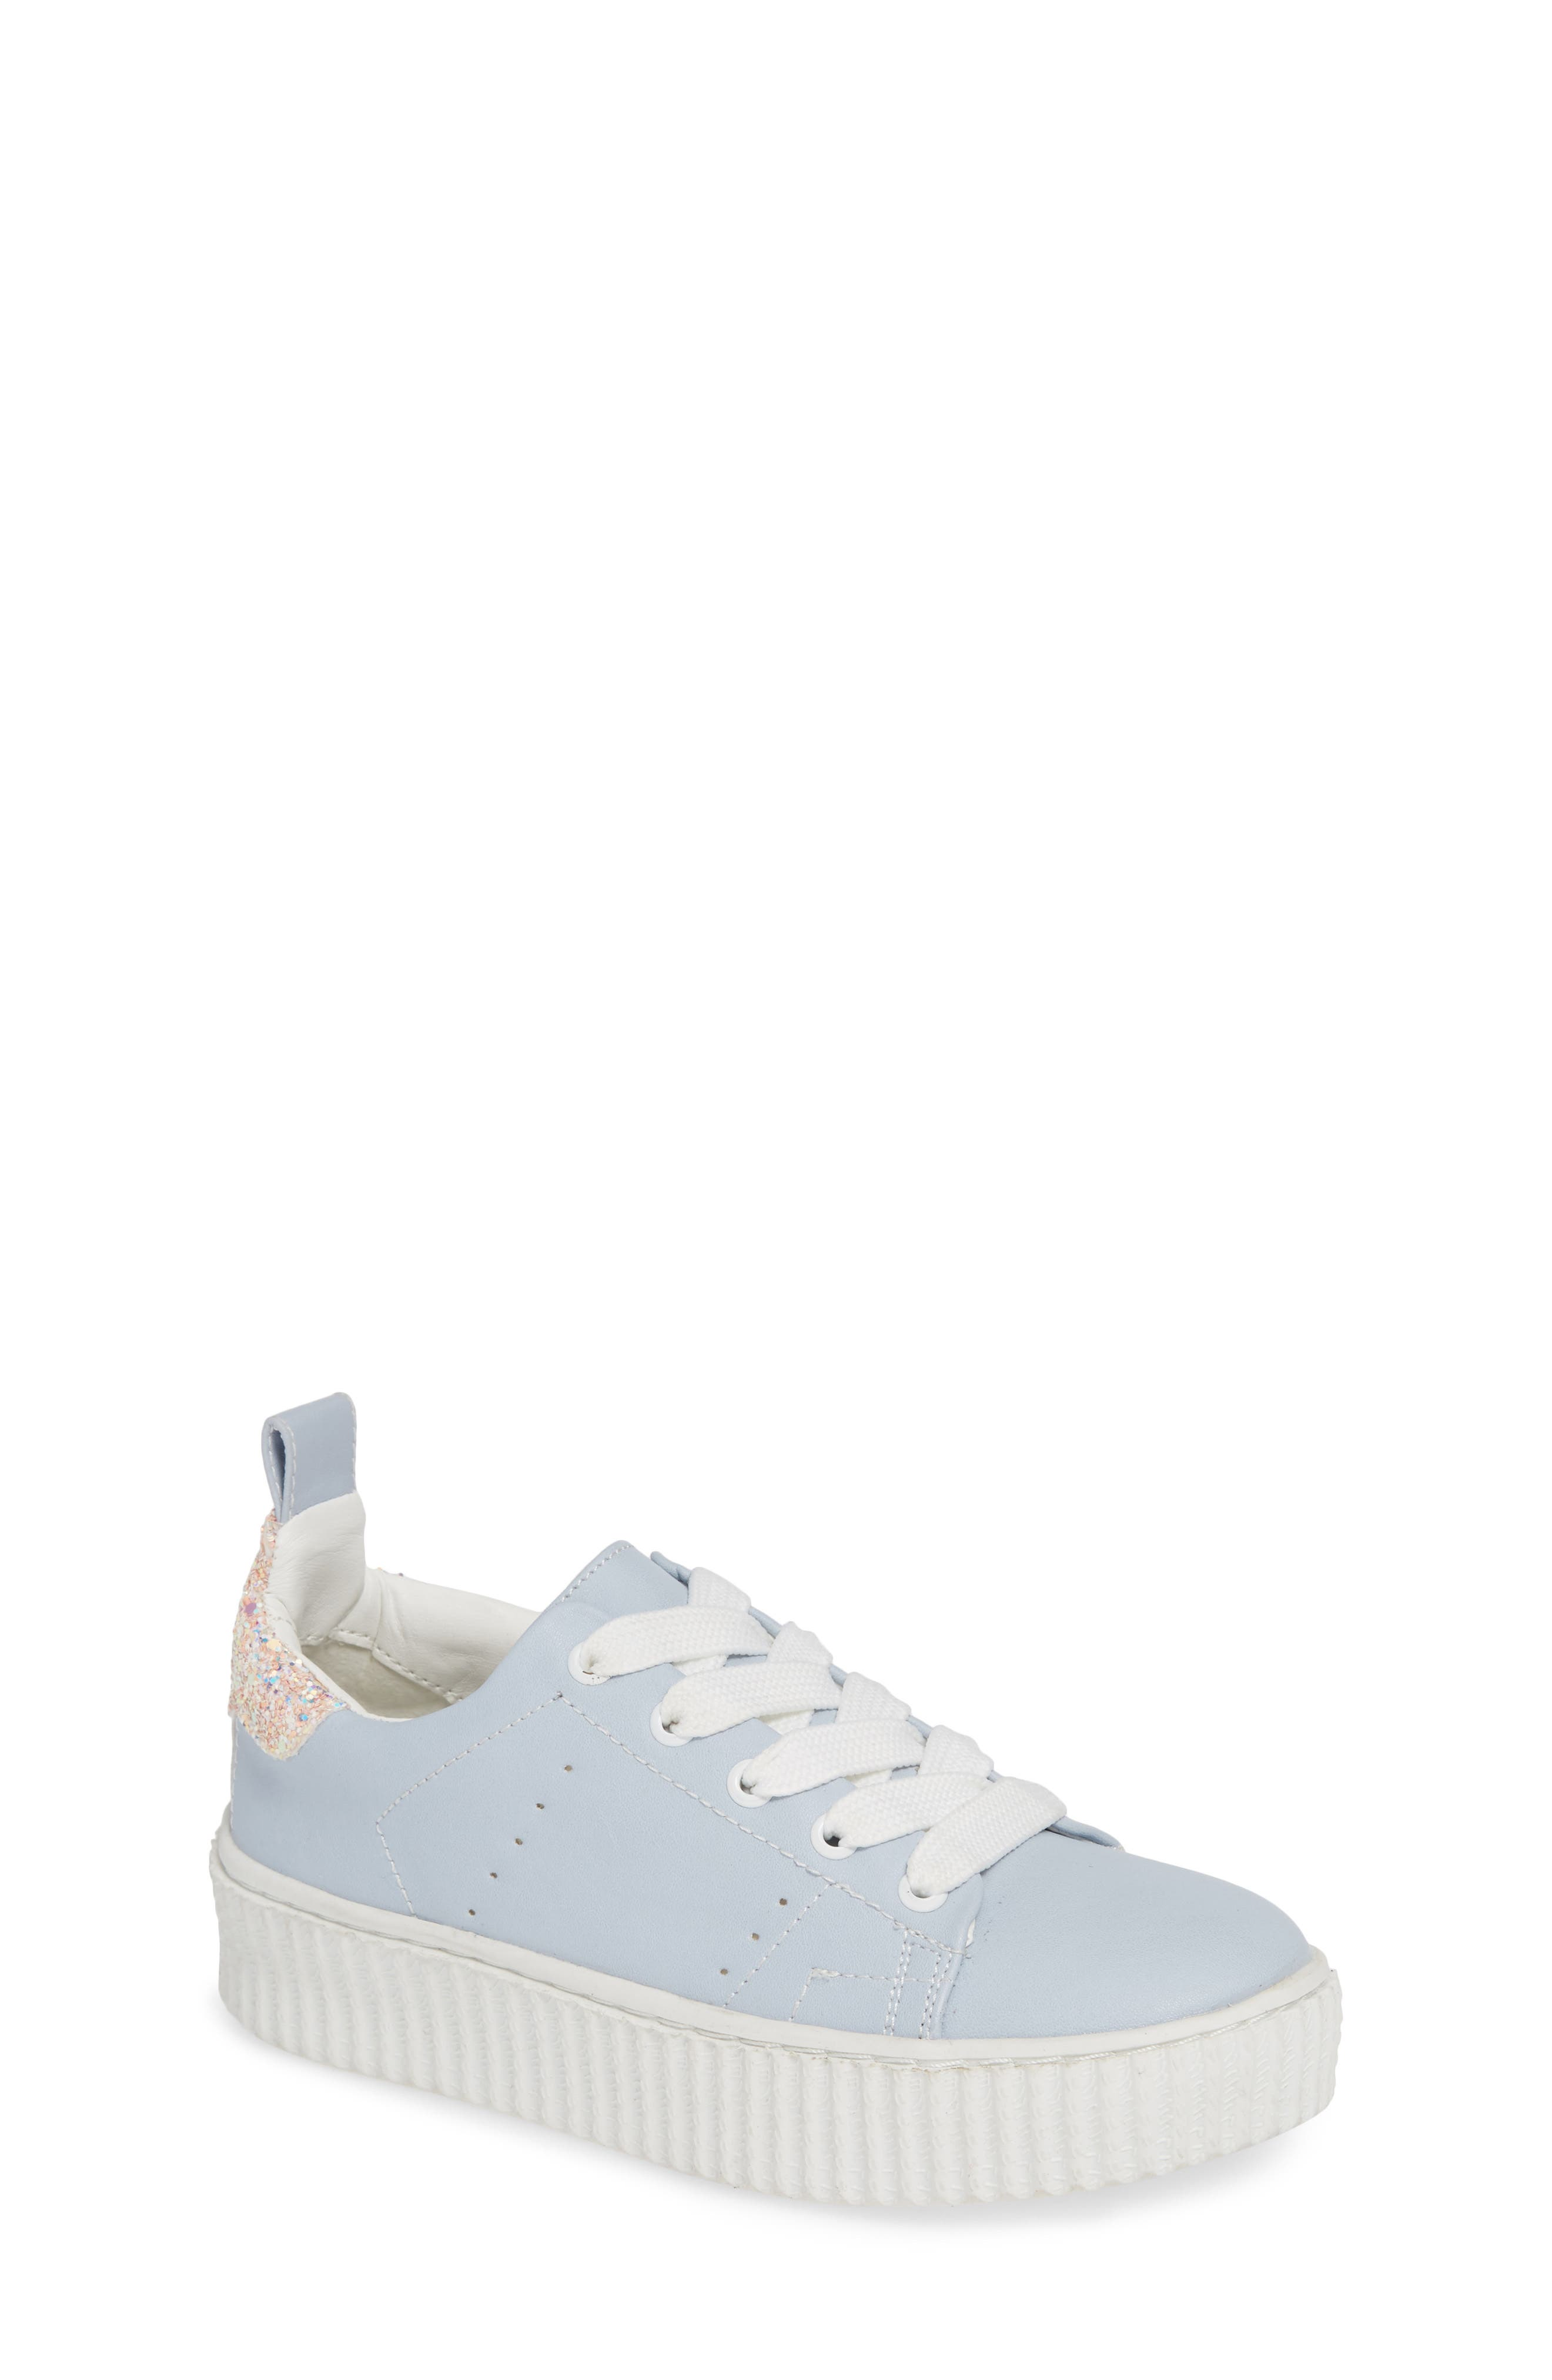 Wren Glitter Heel Sneaker,                             Main thumbnail 1, color,                             LIGHT BLUE